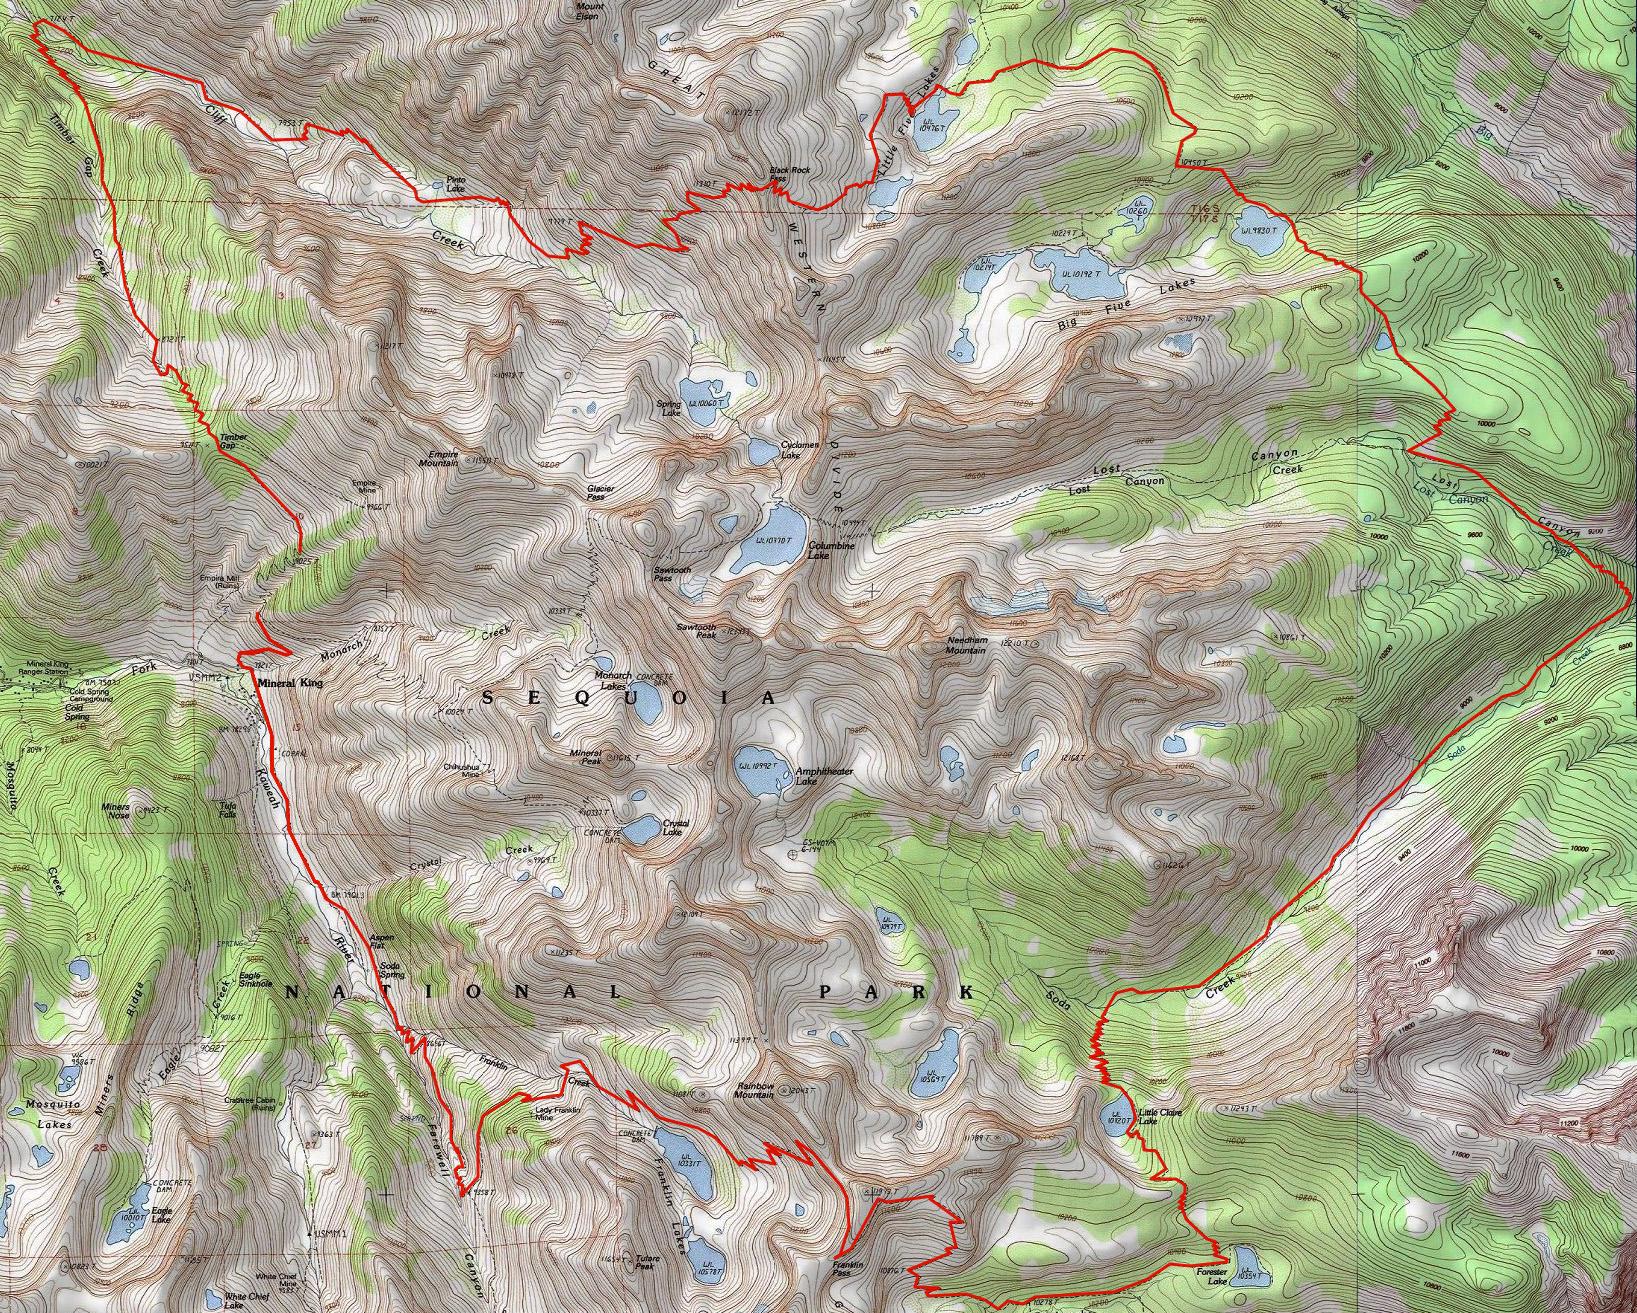 The route: I planned to head over Franklin Pass and return to Mineral King via Timber Gap.